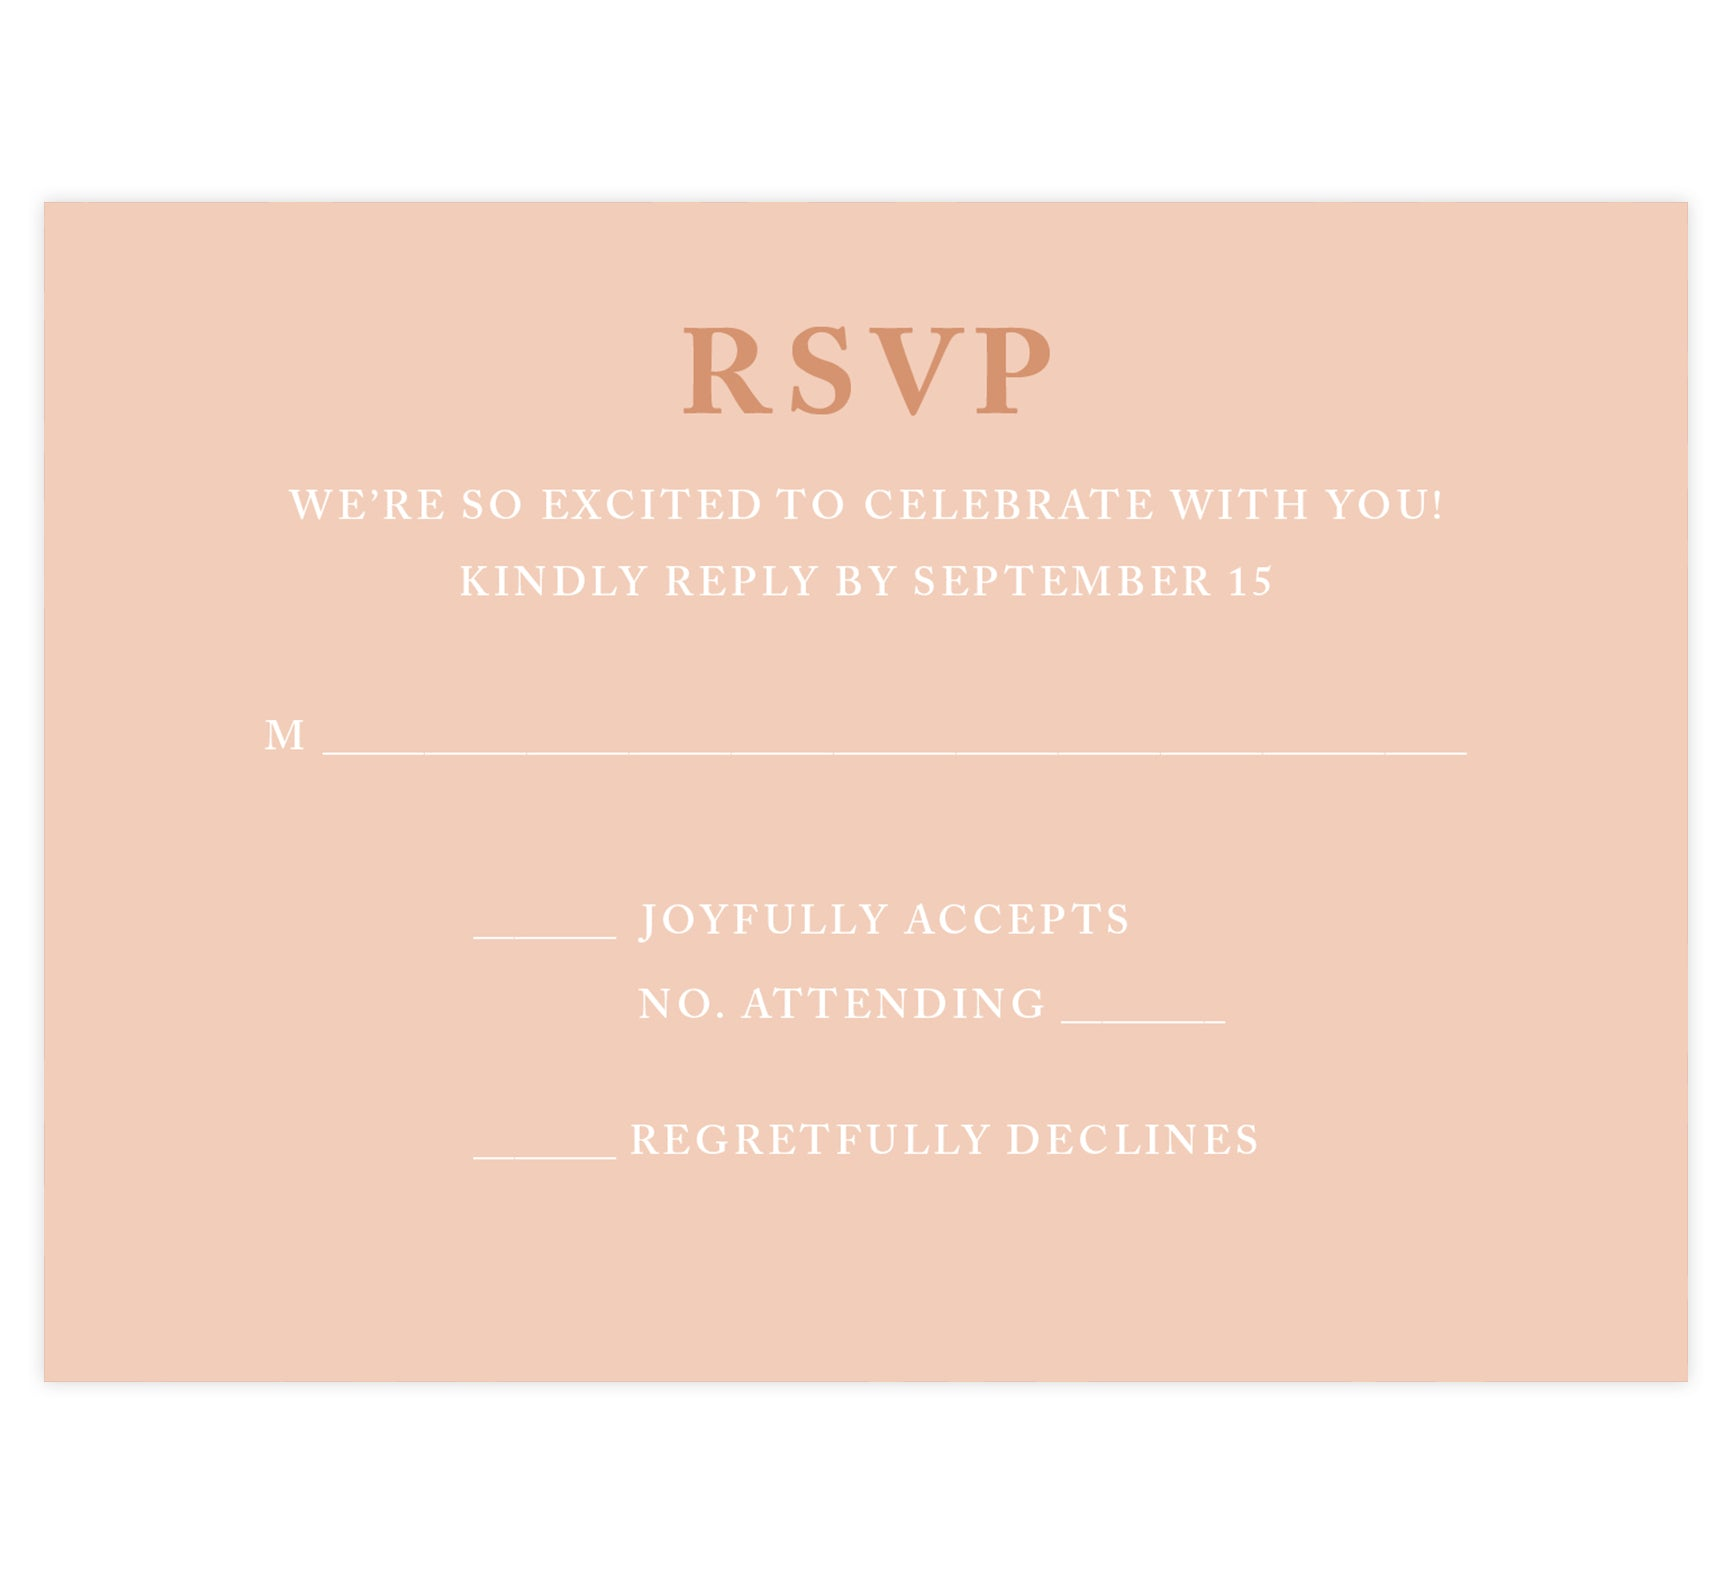 Rose Gold wedding response card; pink background with rose gold and white text